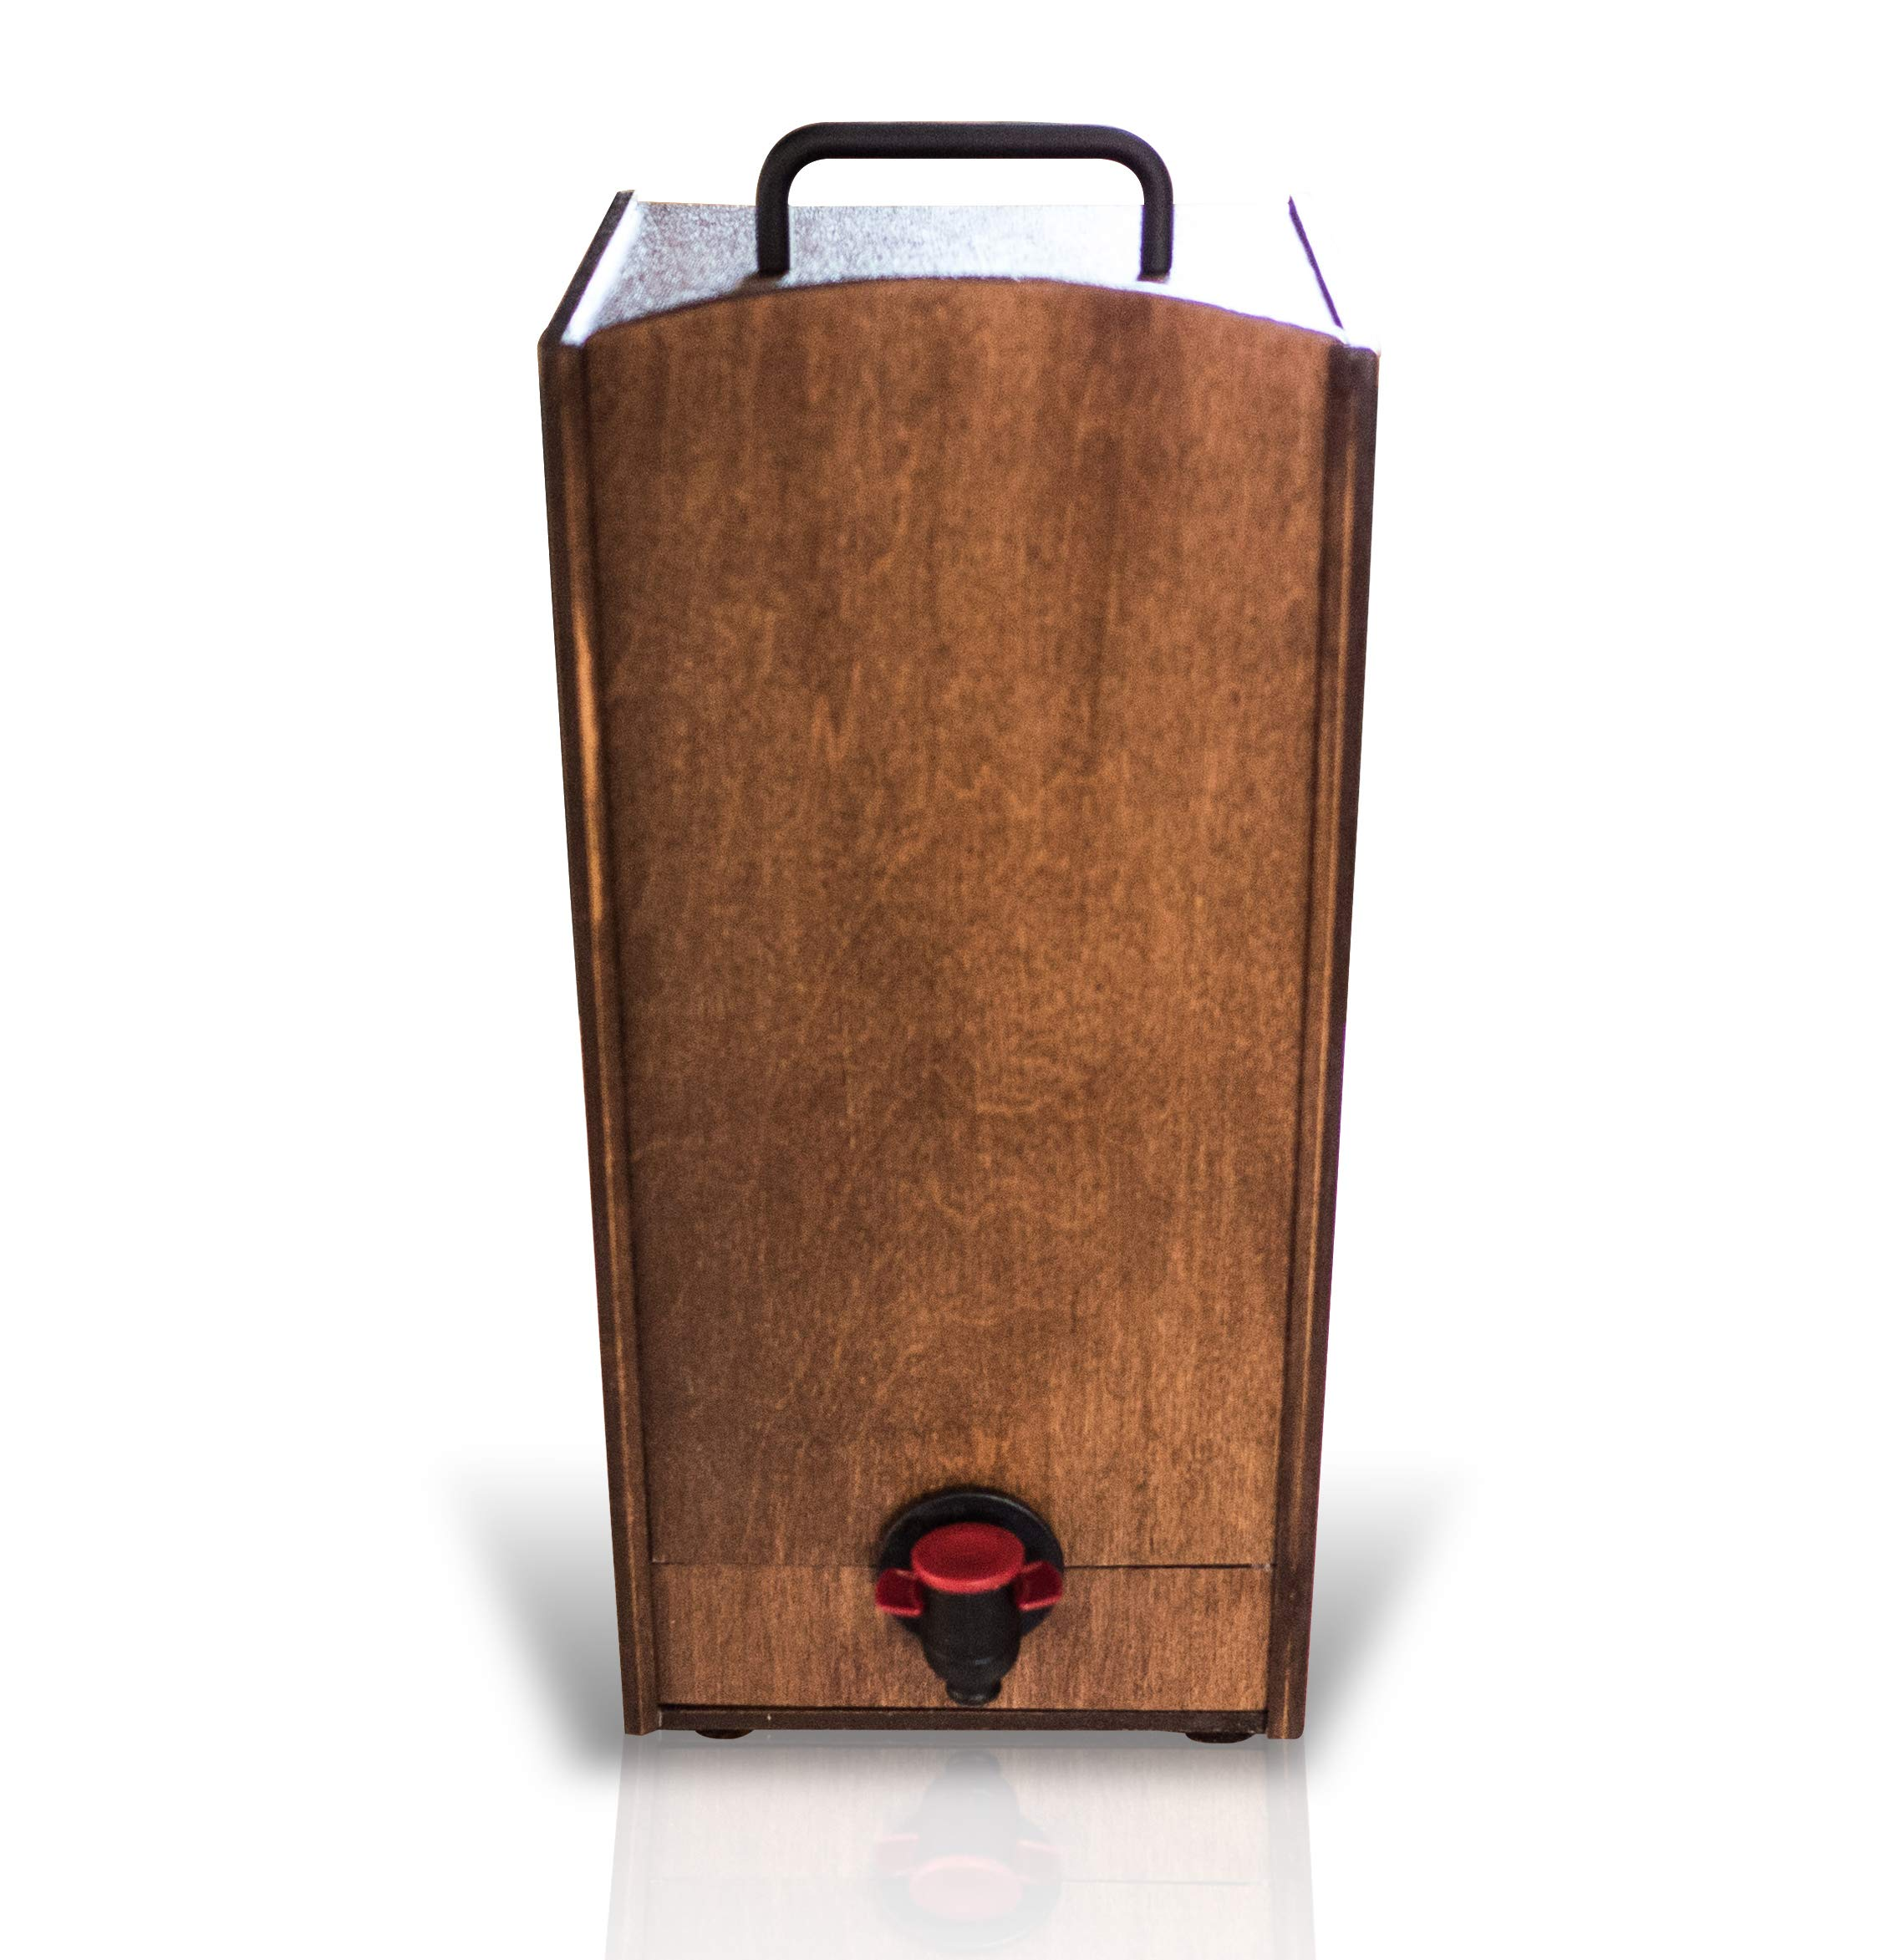 Boxed Wine Wood Case by Winewood   Walnut Color   Fits 3 Liter Boxes of Wine   Holder, Dispenser, Cover for Boxed Wine